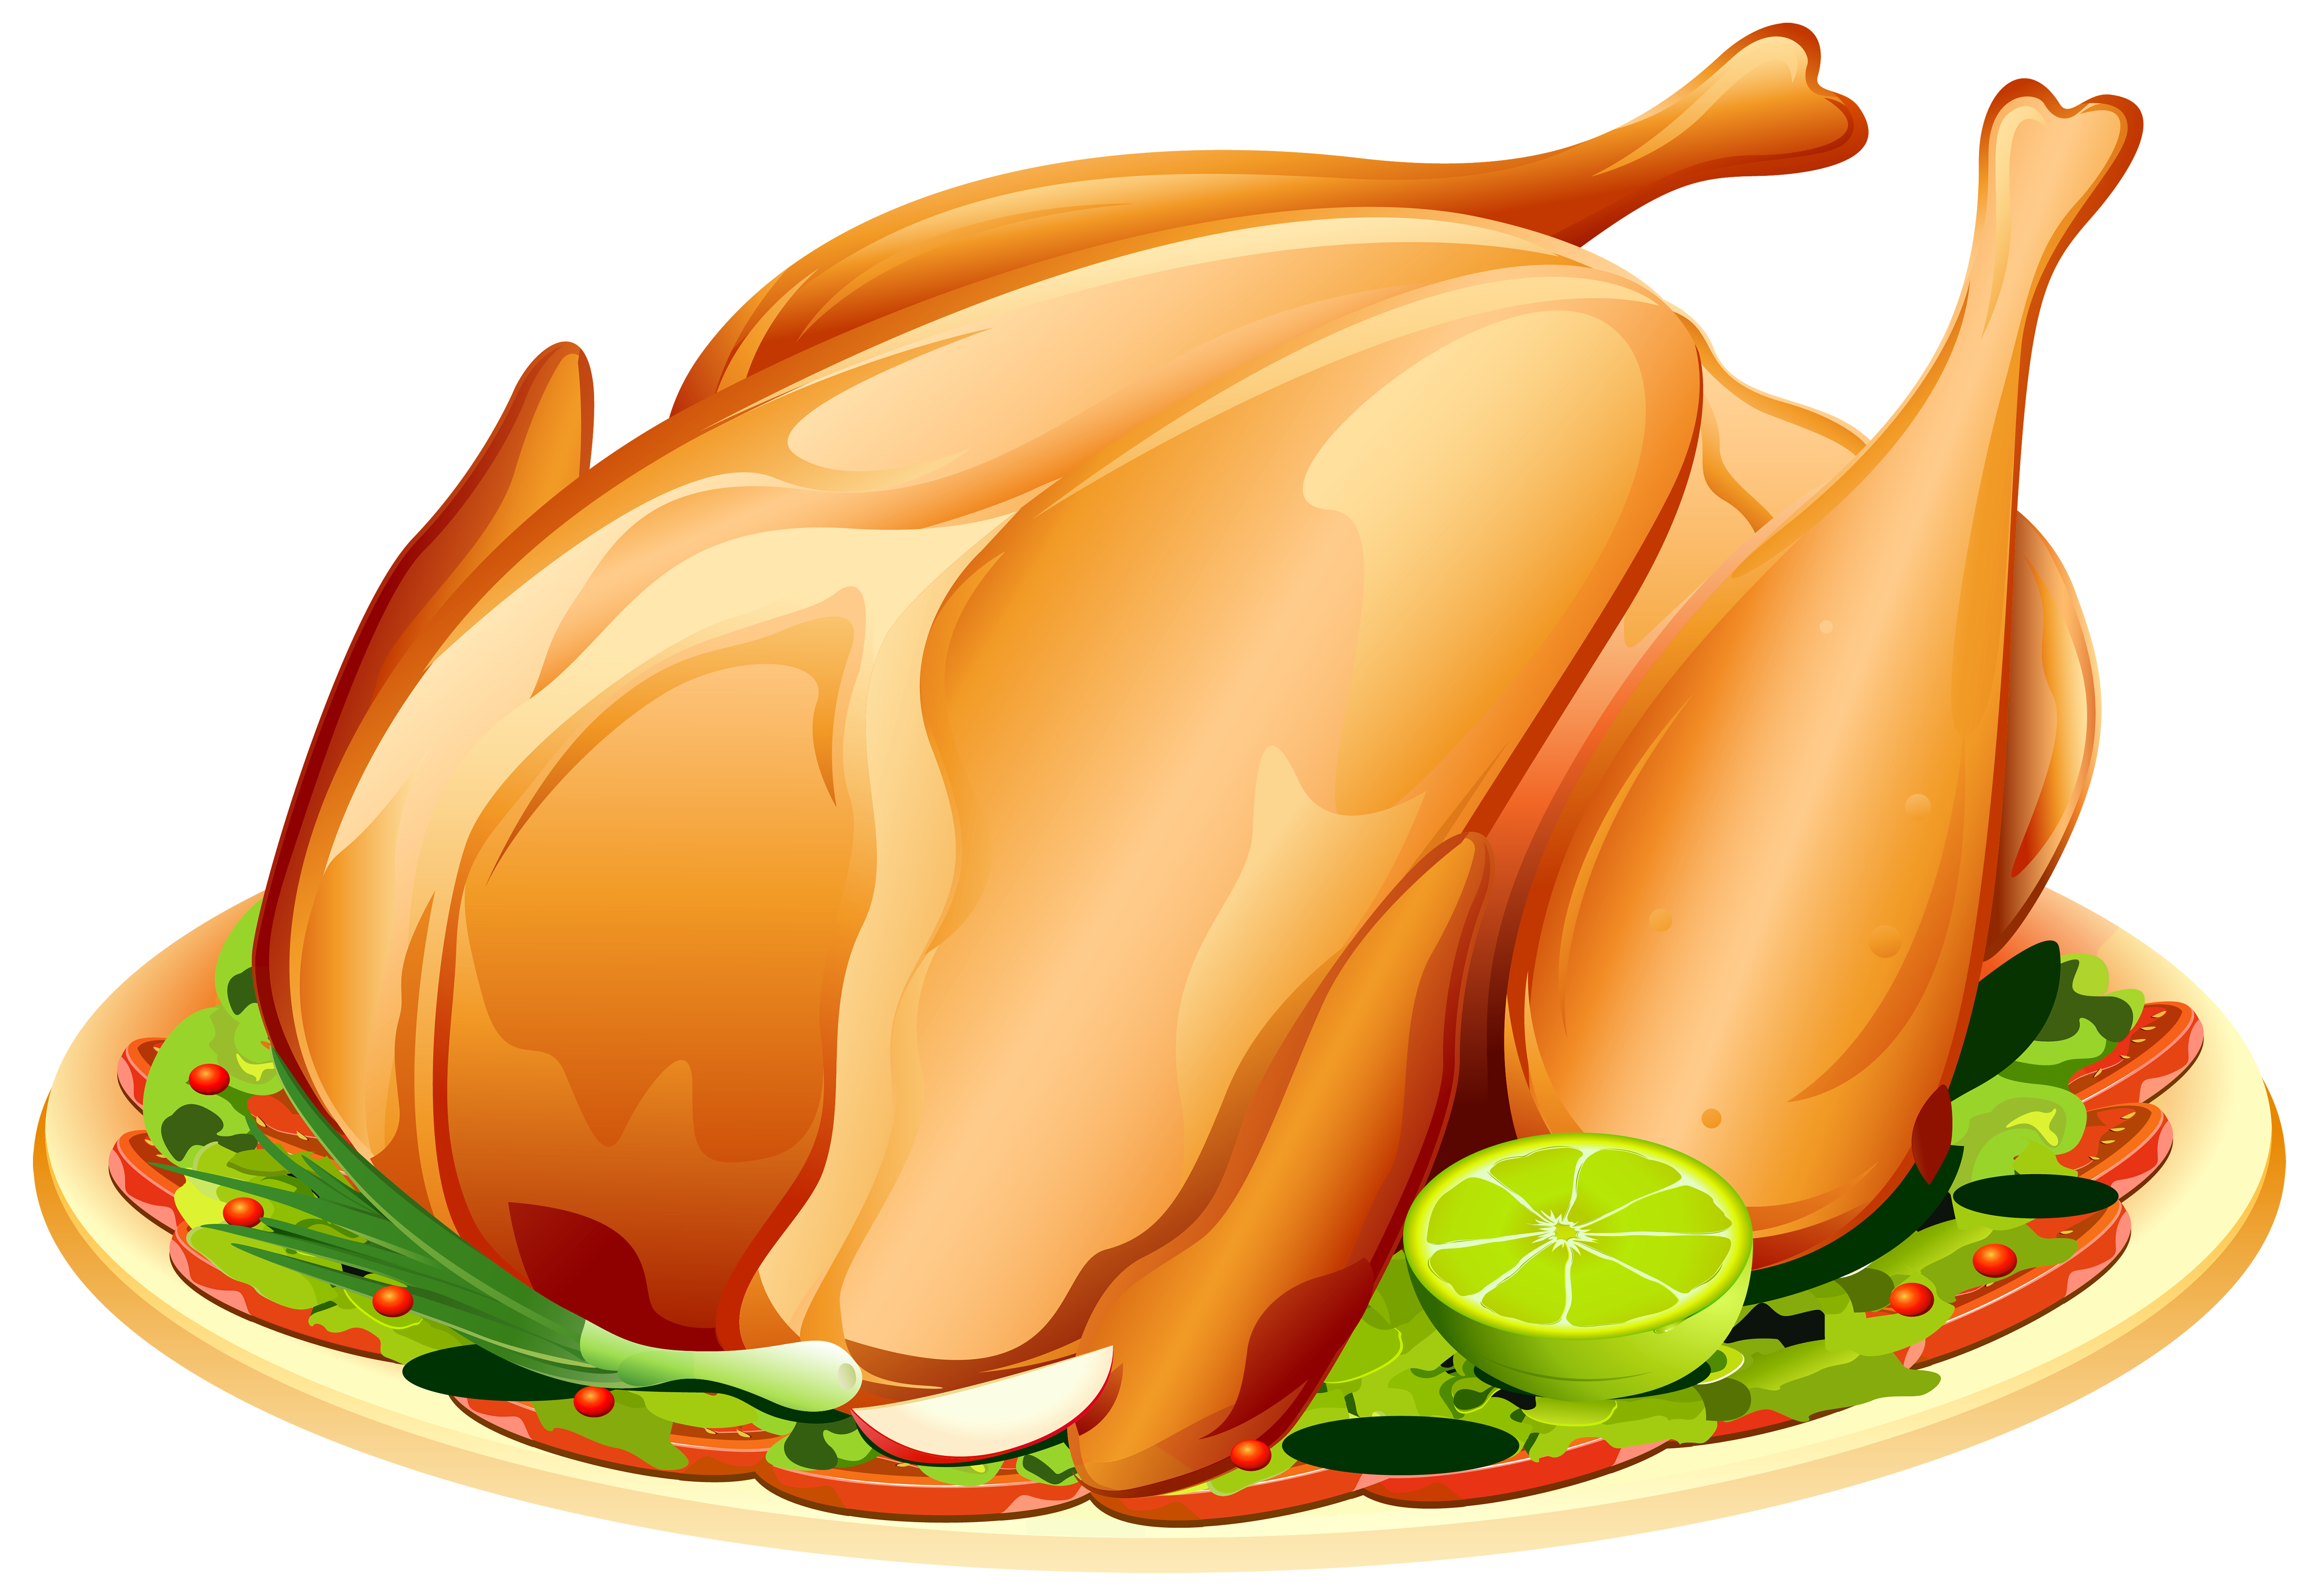 Roast turkey pictures clipart banner freeuse Roast Turkey PNG Clipart Image | Gallery Yopriceville ... banner freeuse